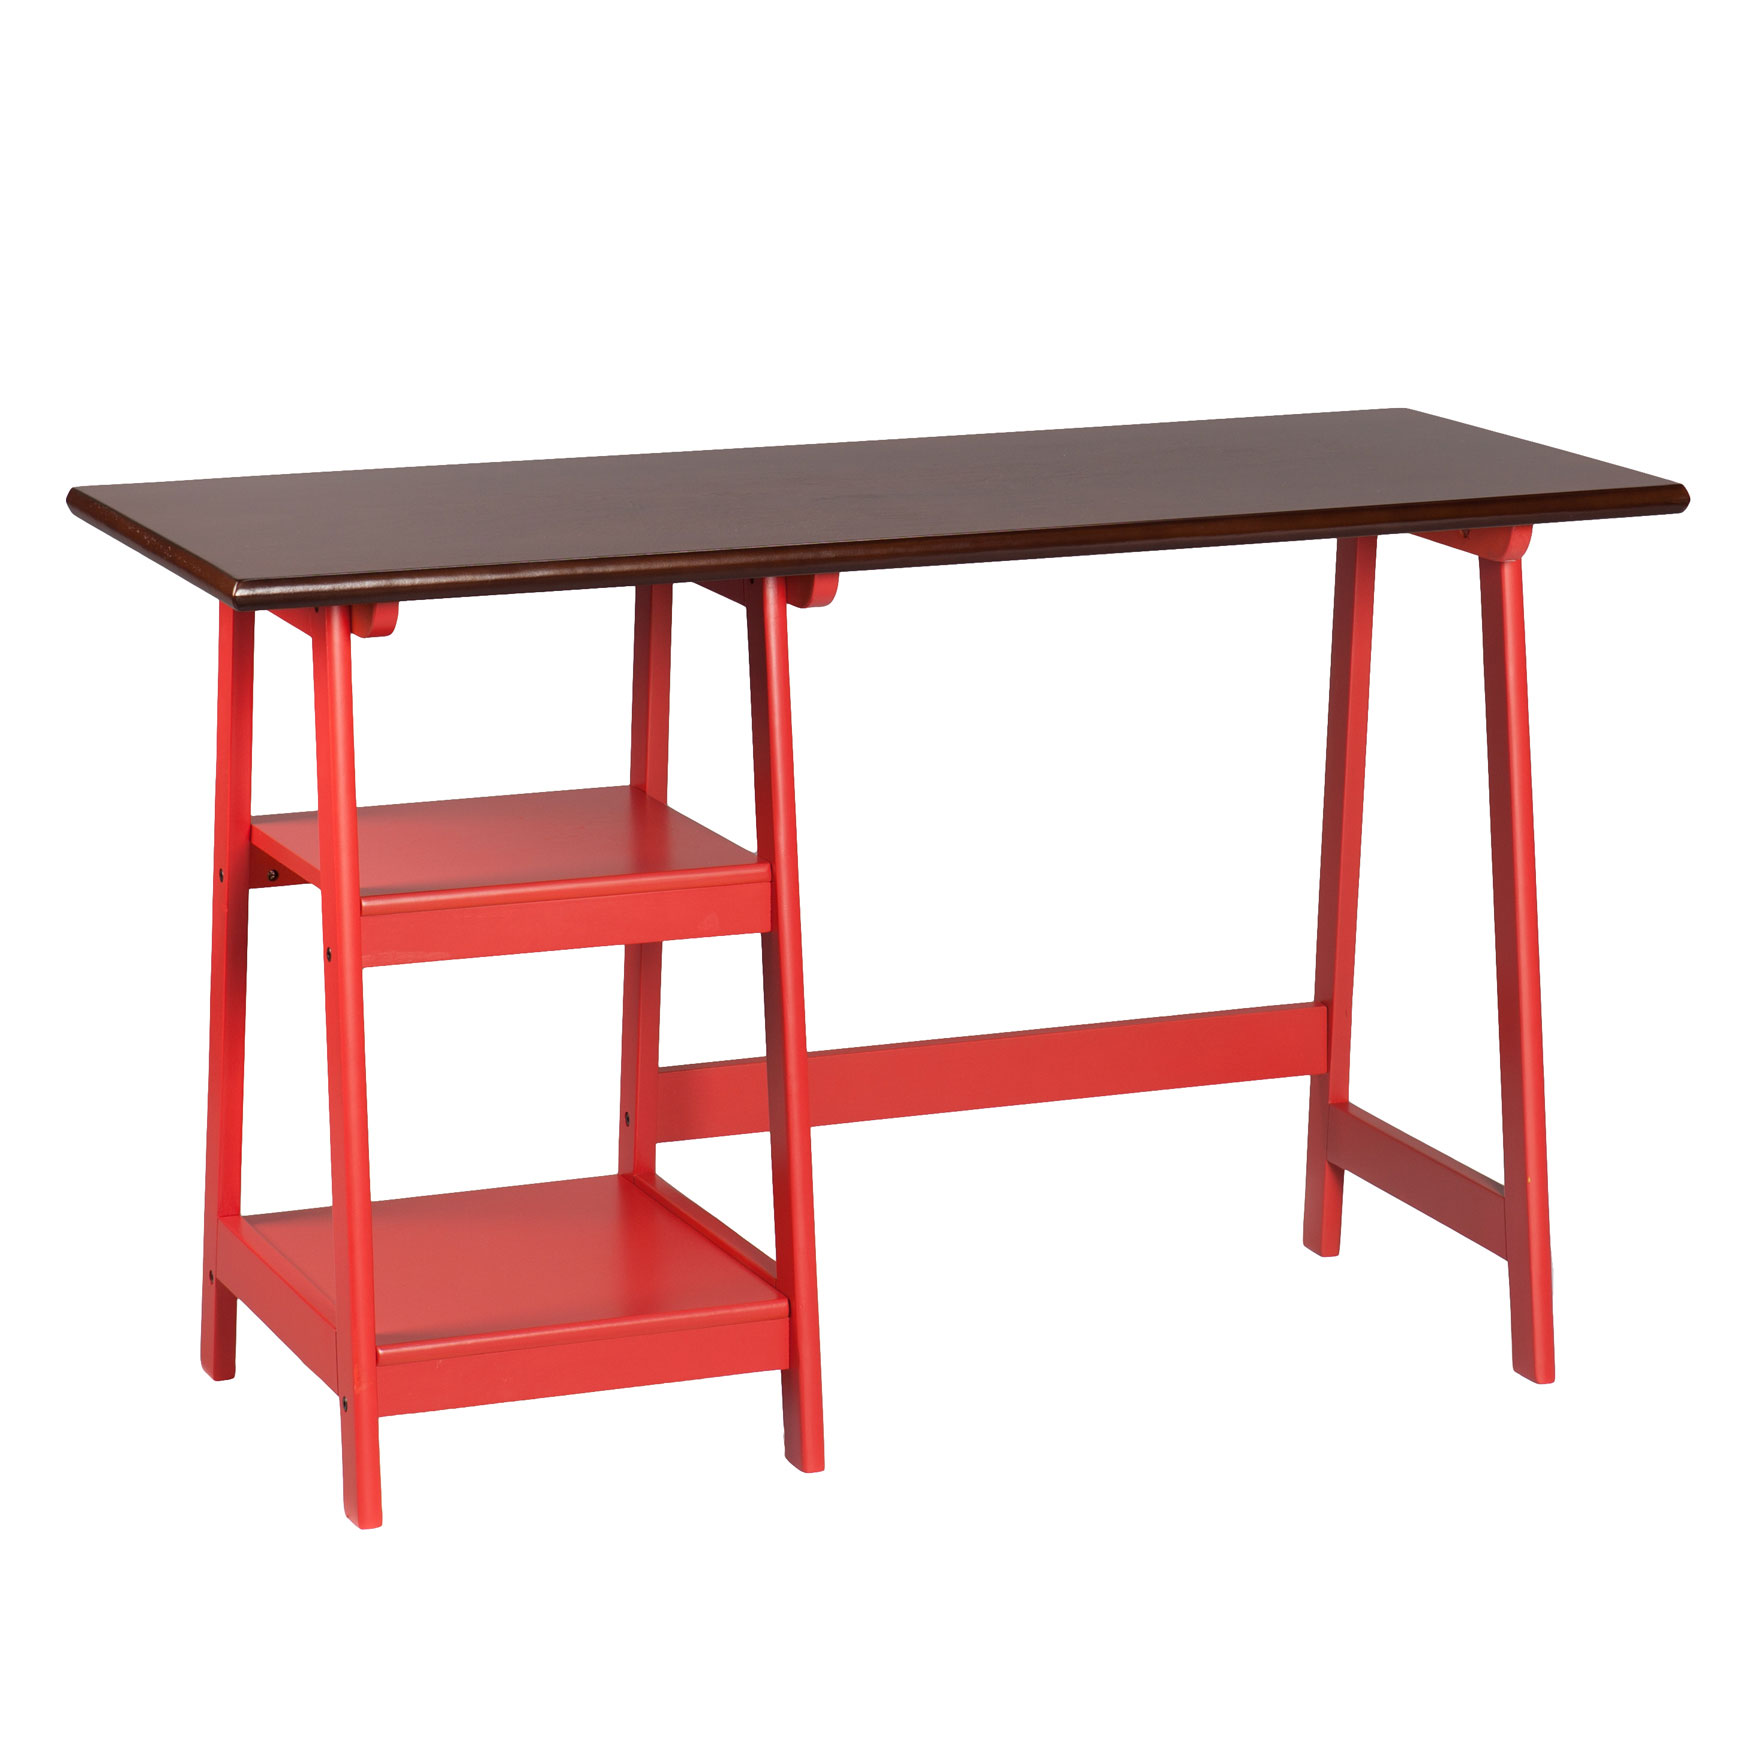 Farmhouse-Styled Simple A-Shape Desk, RED ESPRESSO